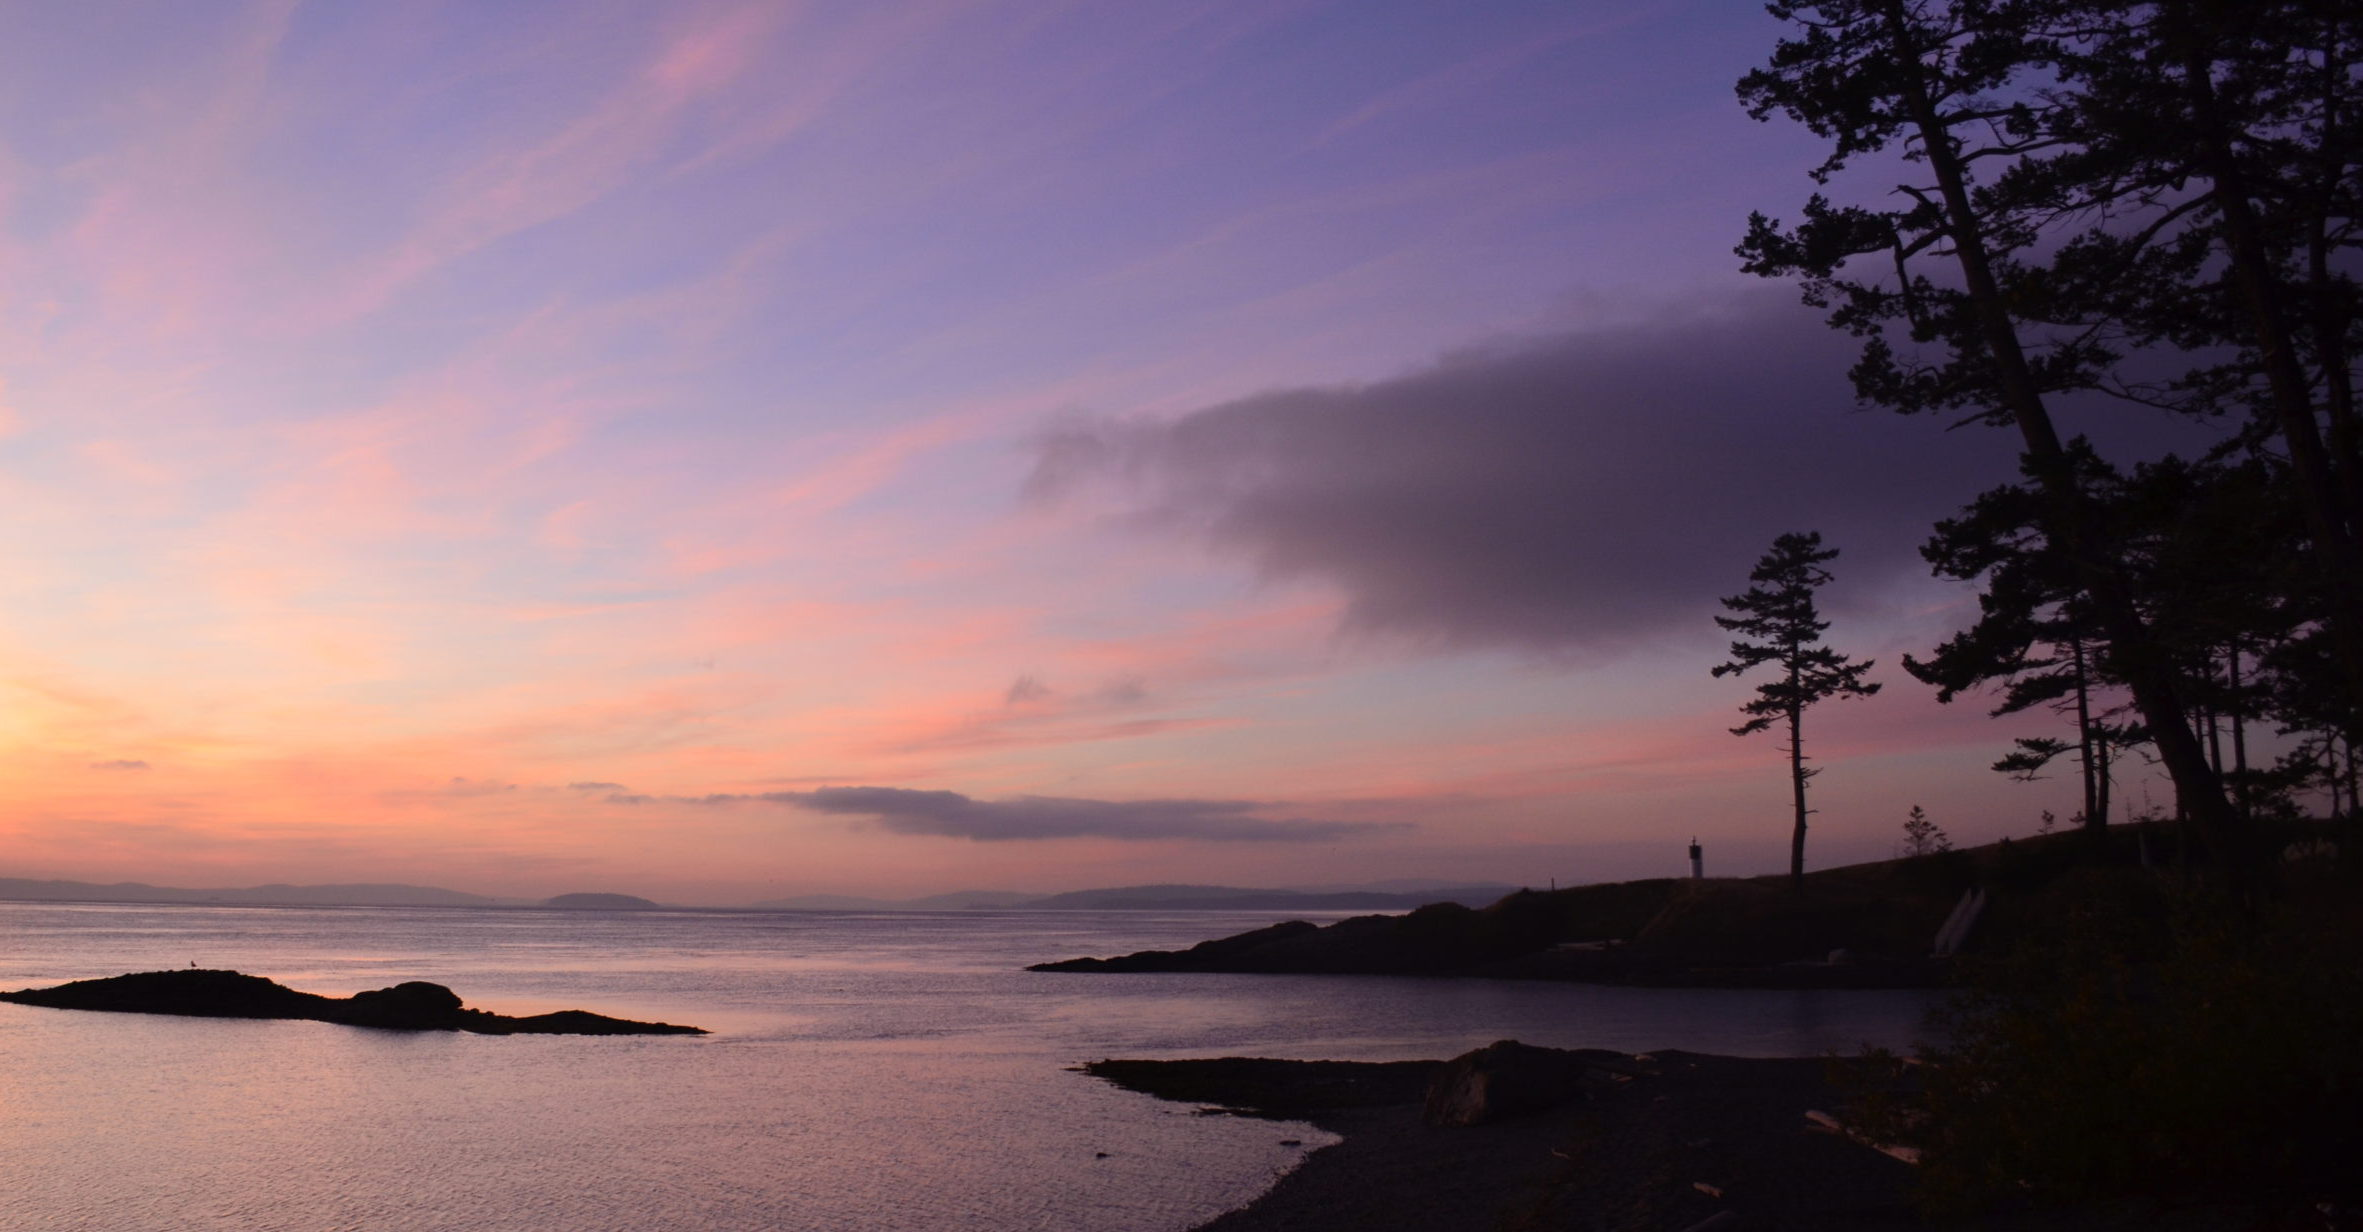 purple and pink sunset over an ocean bay with the silhouette of a shore and trees in the foreground